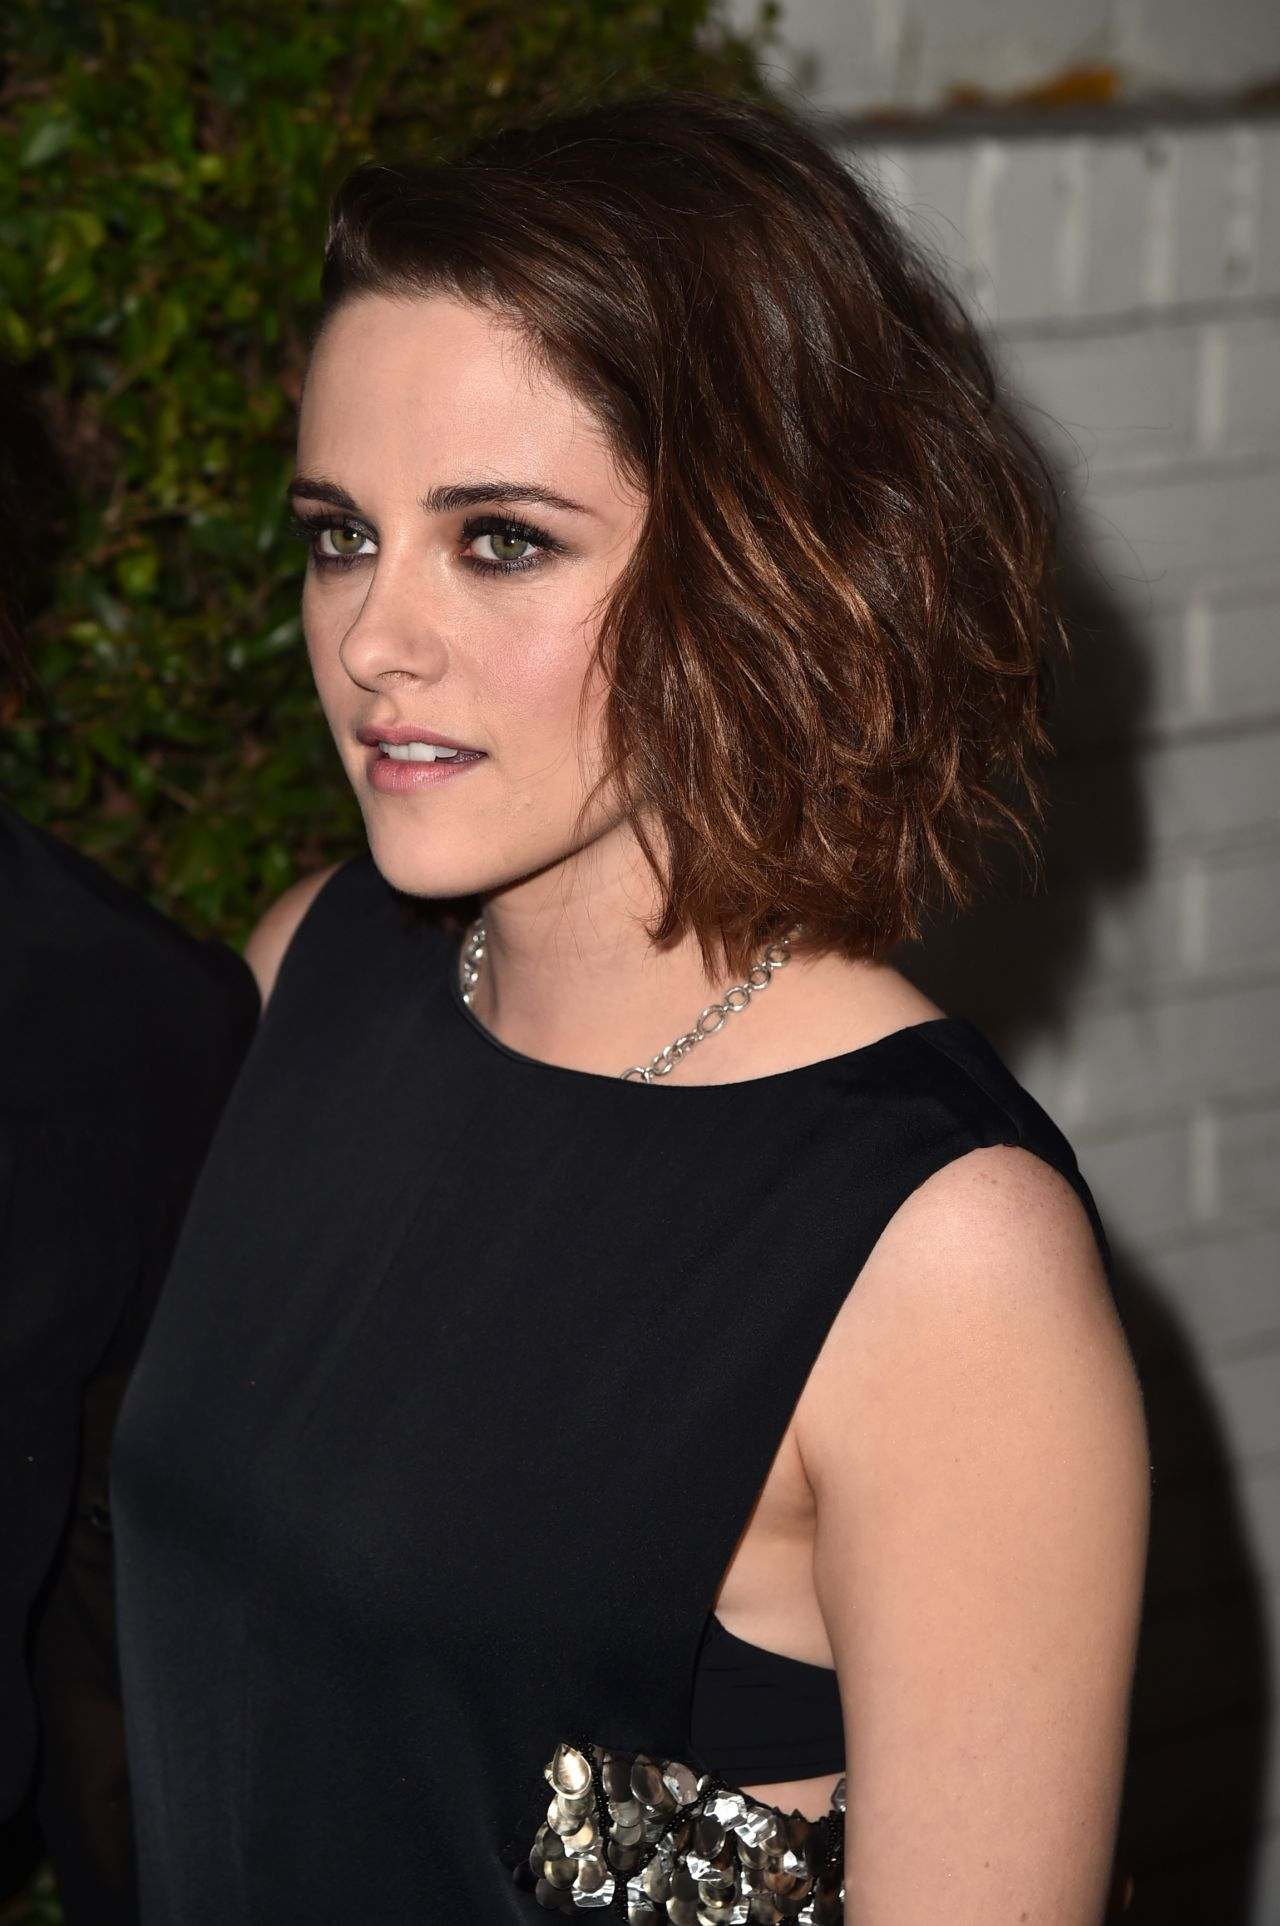 kristen-stewart-inaugural-image-maker-awards-hosted-by-marie-claire-in-los-angeles-1-12-2016-1